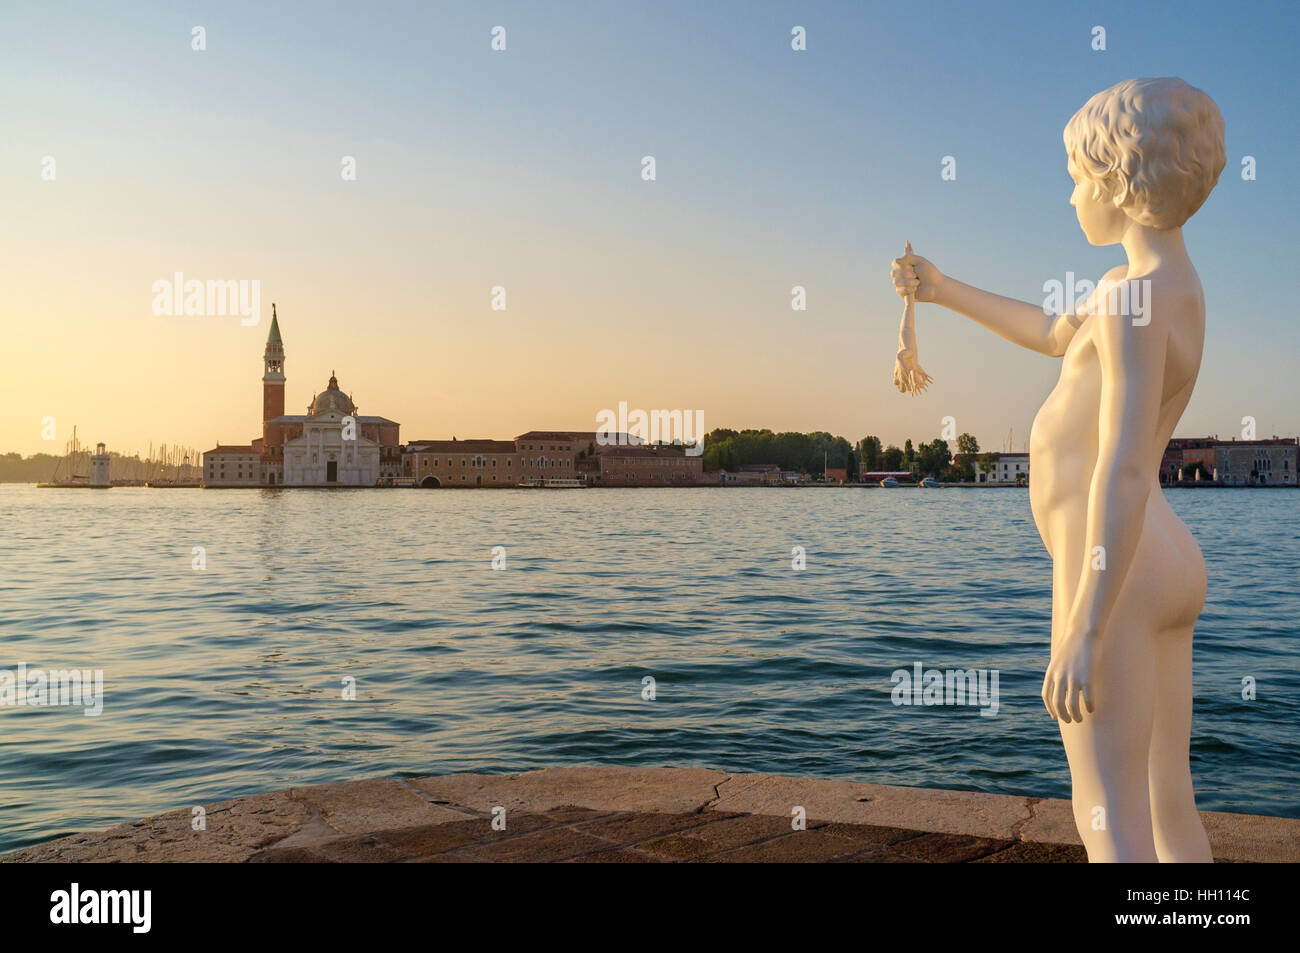 Boy With a Frog on Fondamenta Salute at the tip of Dorsoduro Venice - Stock Image